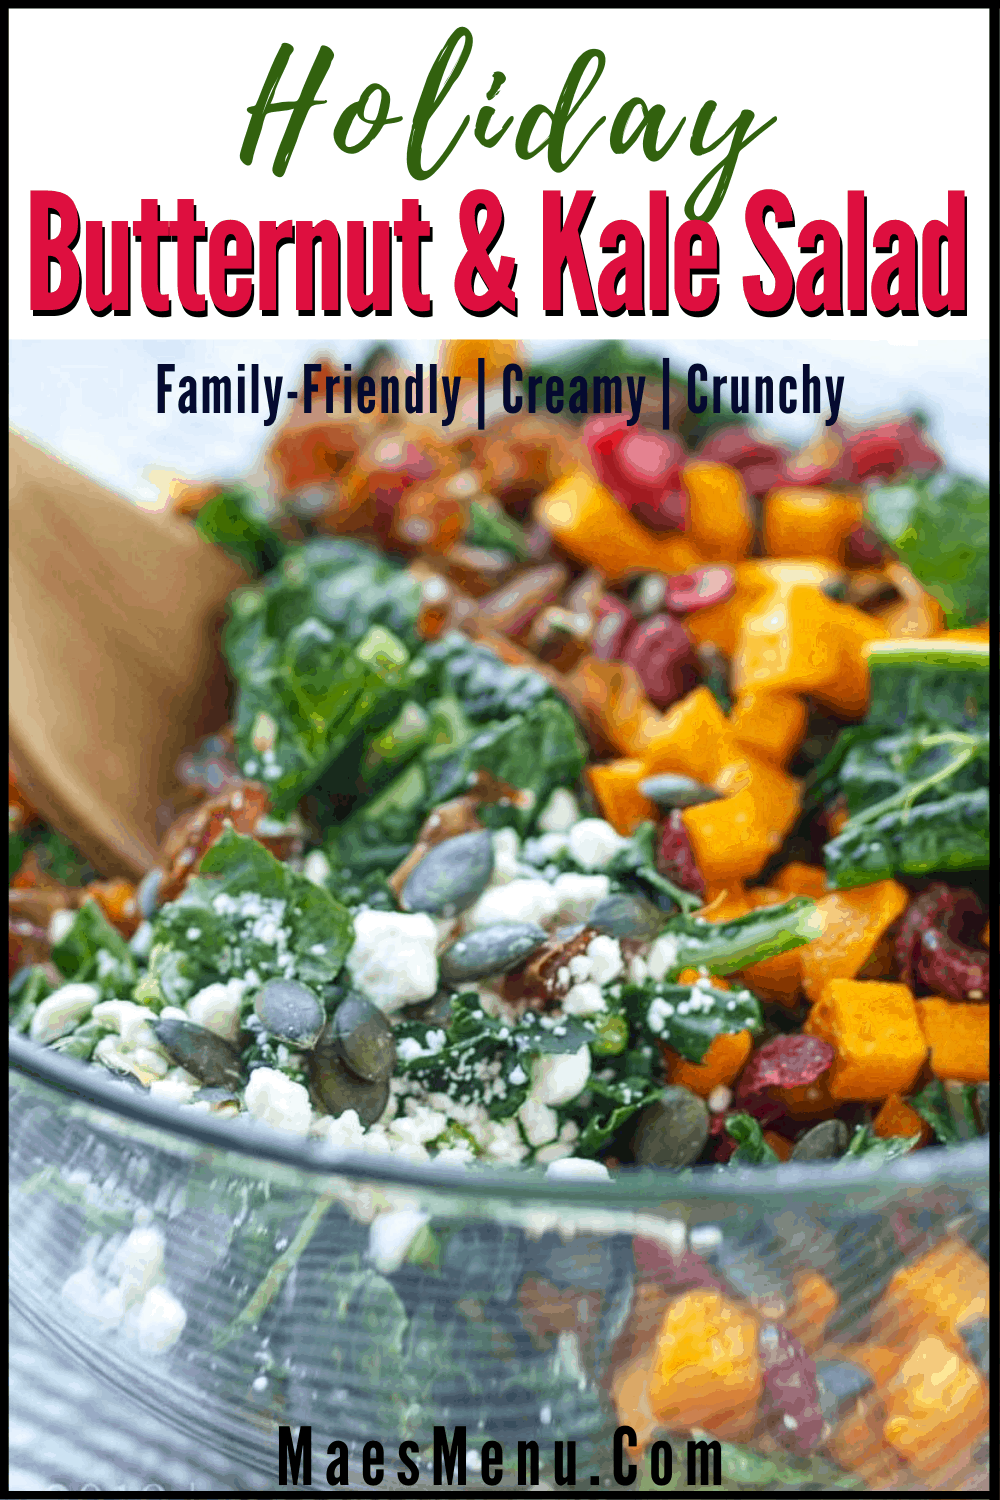 A pinterest pin for holiday kale salad with an up-close picture of a holiday kale salad before being tossed